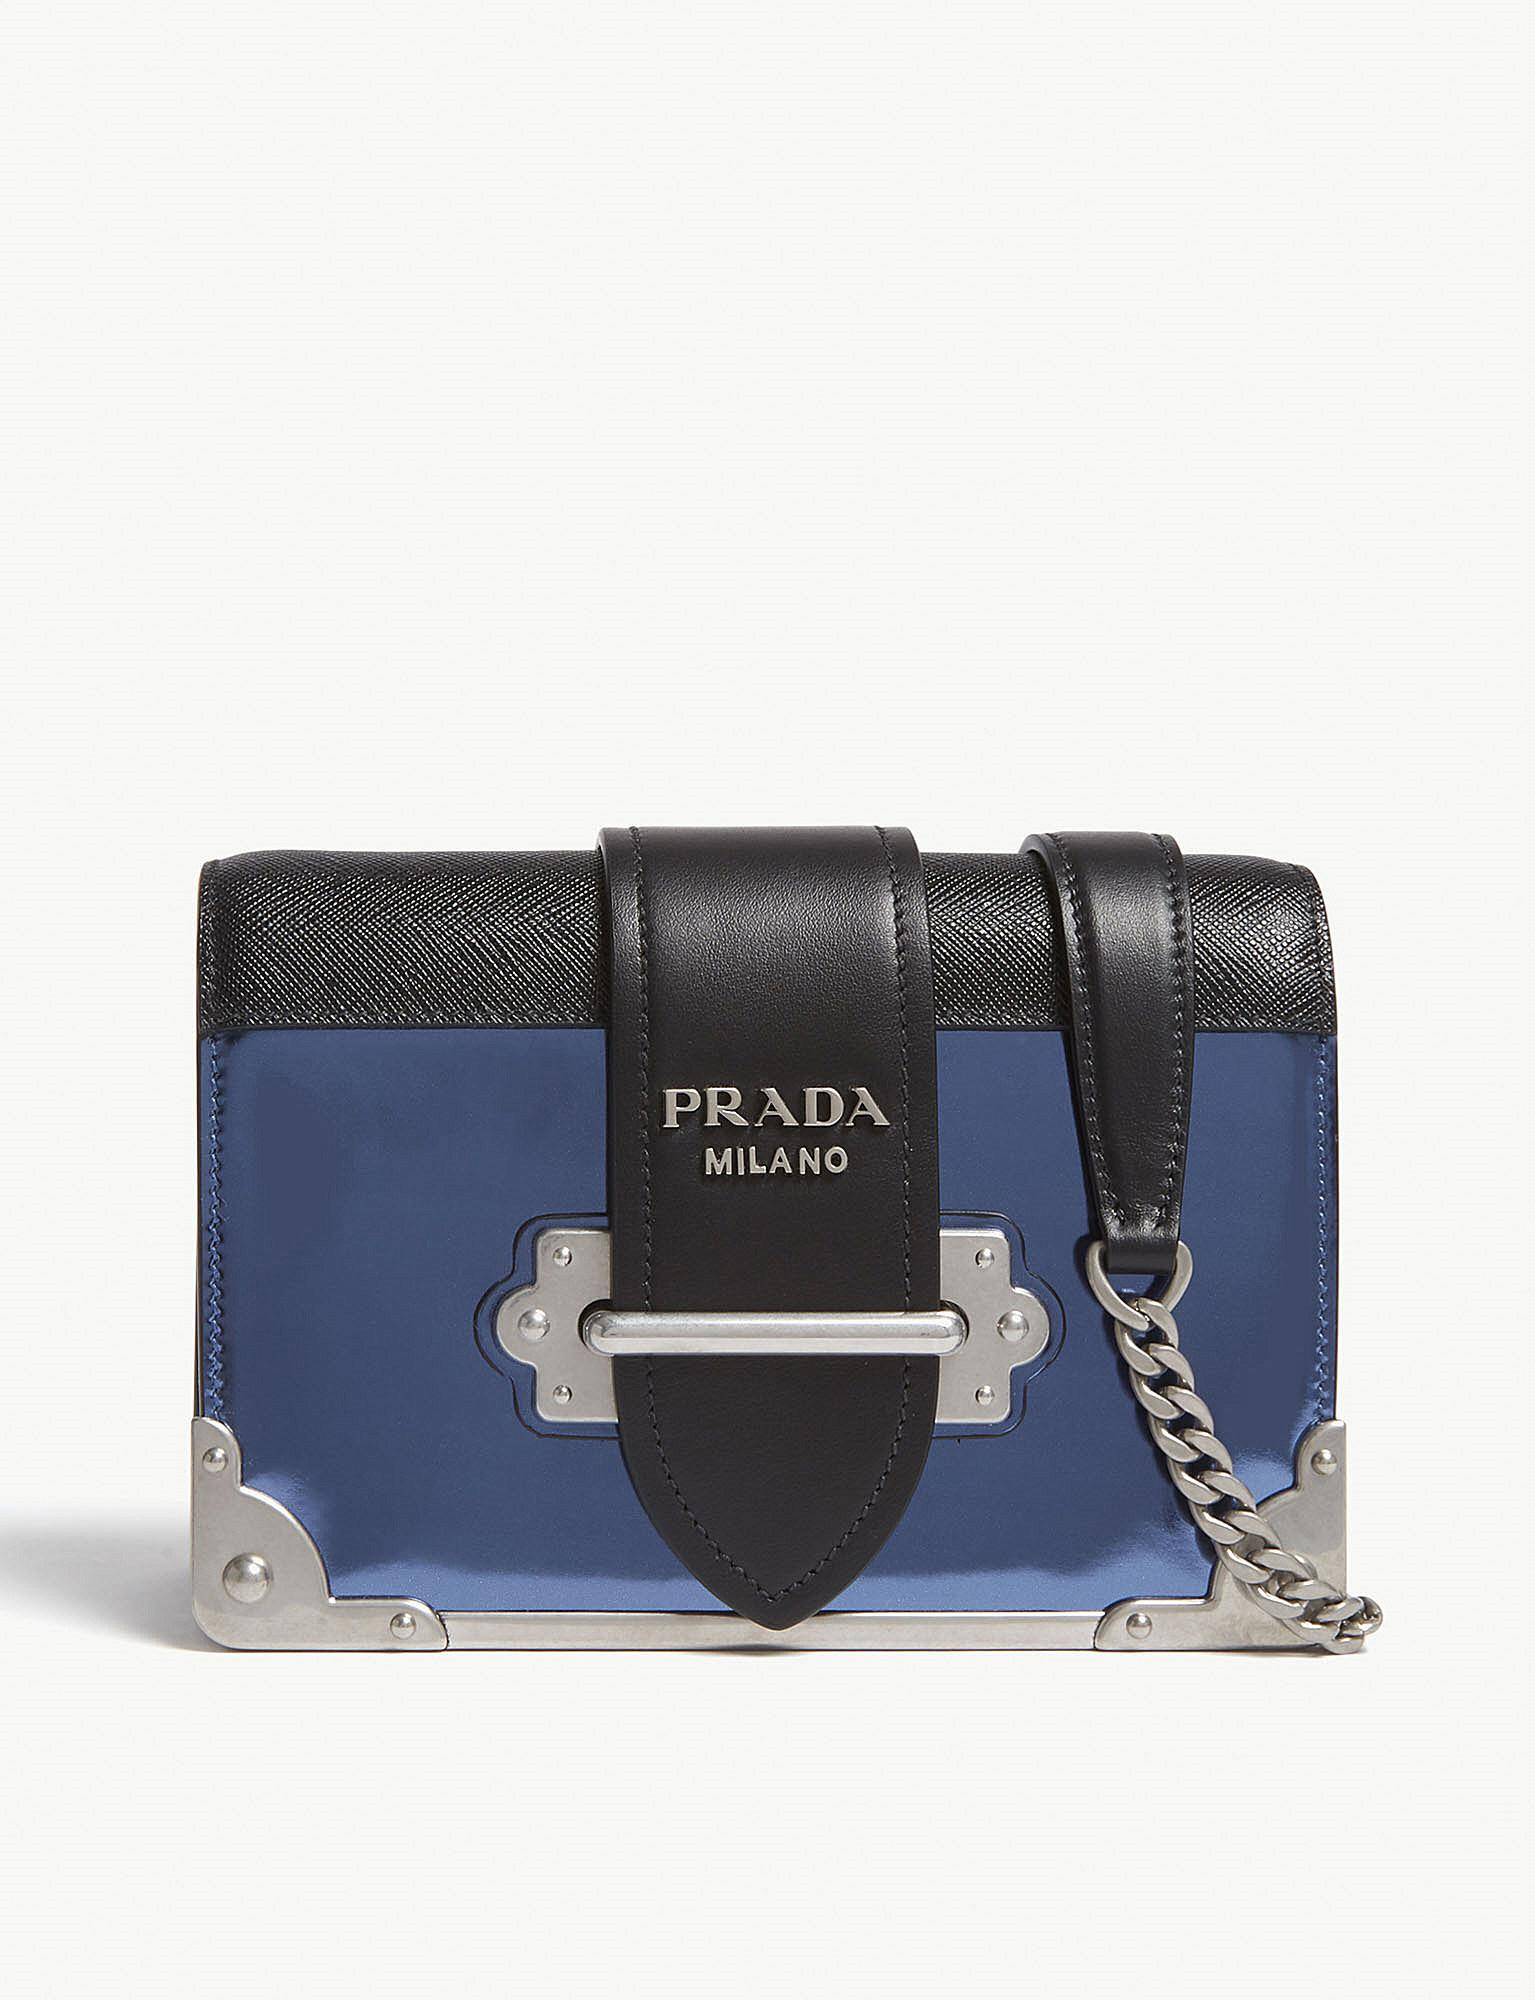 77bddbd97291 Prada Blue Cahier Small Metallic Leather Shoulder Bag in Blue - Lyst